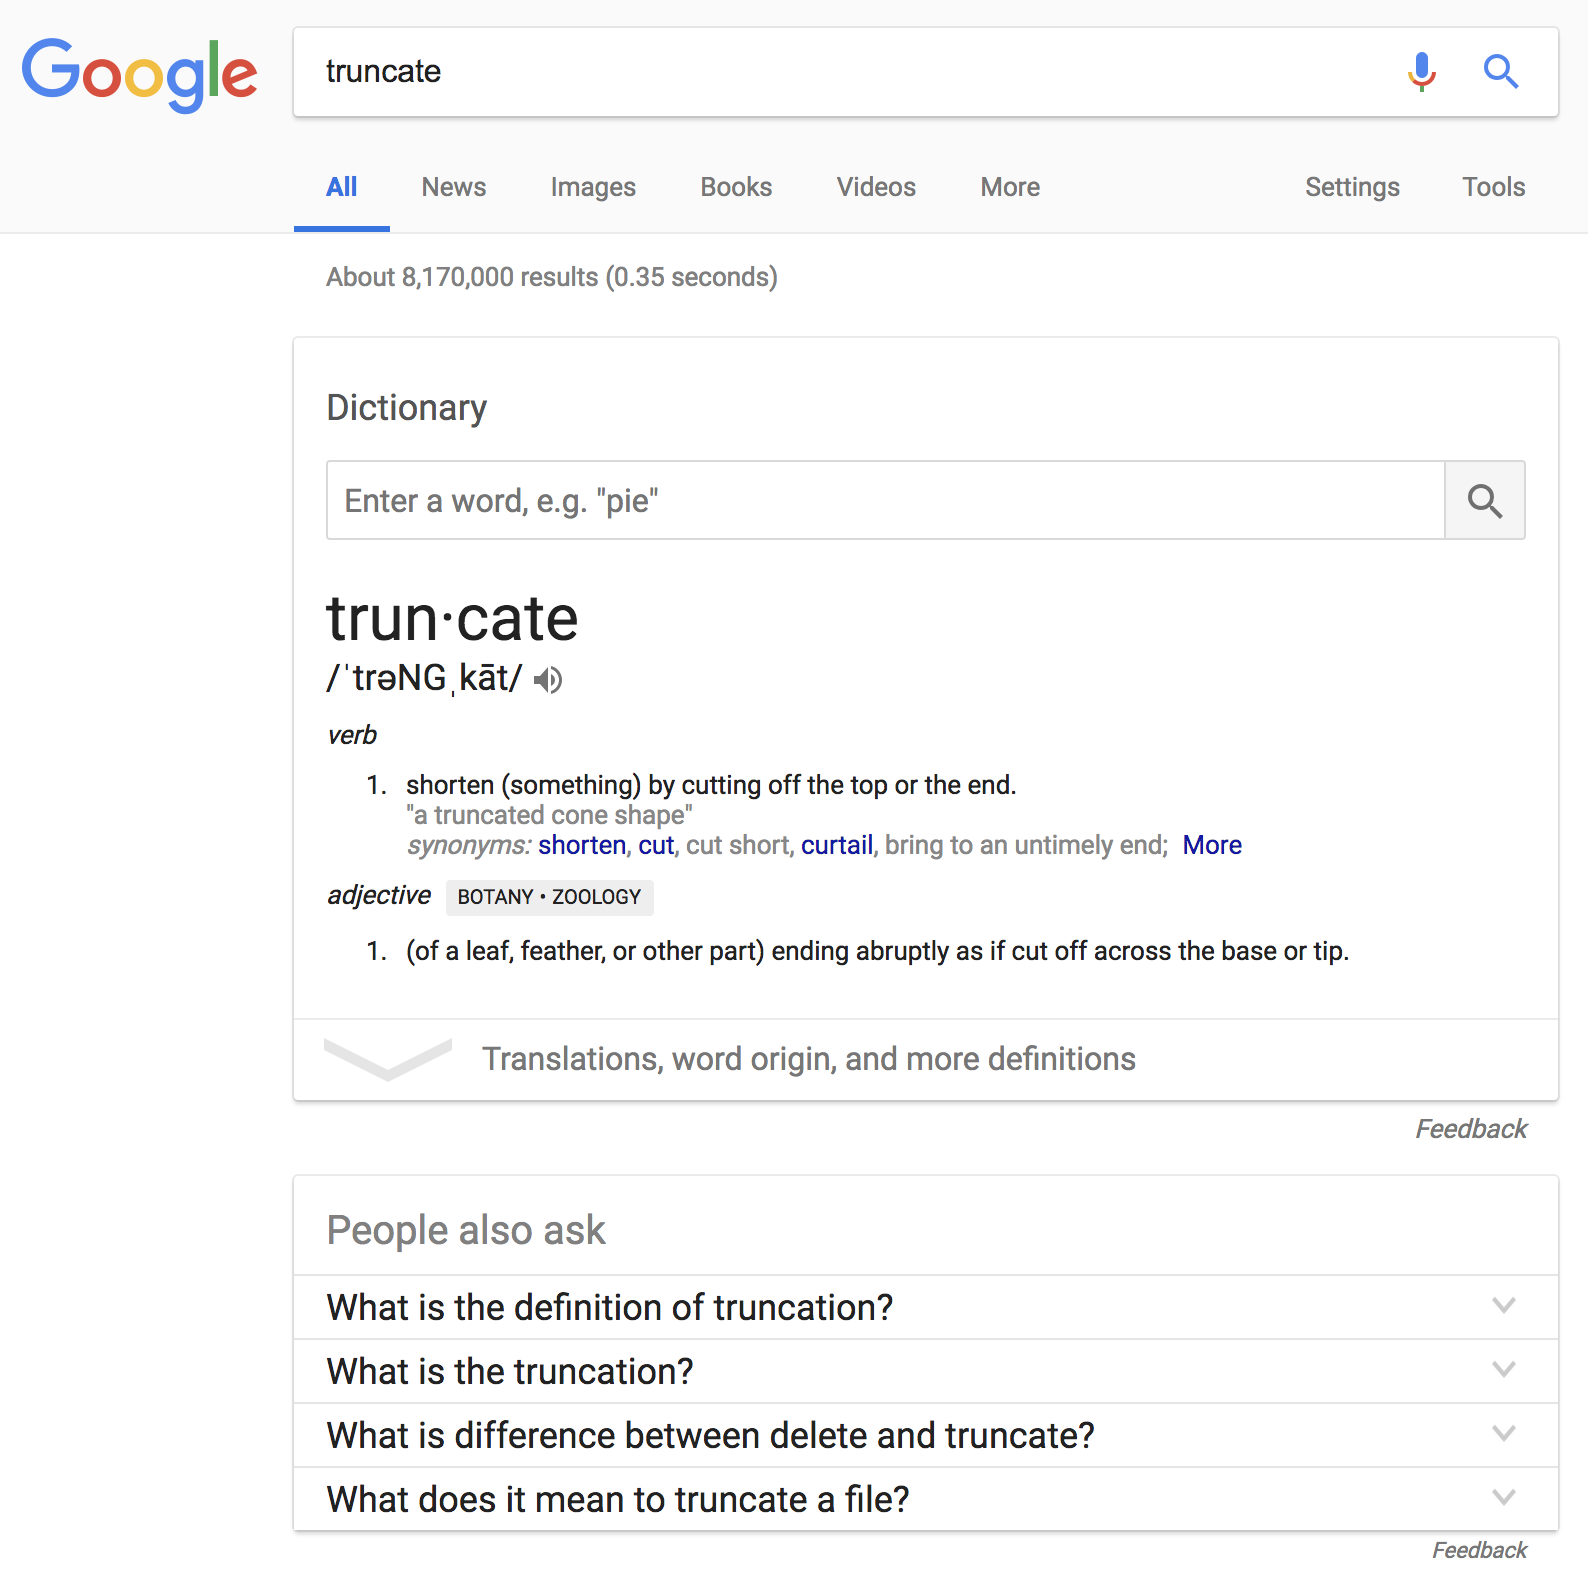 definition-featured-snippet